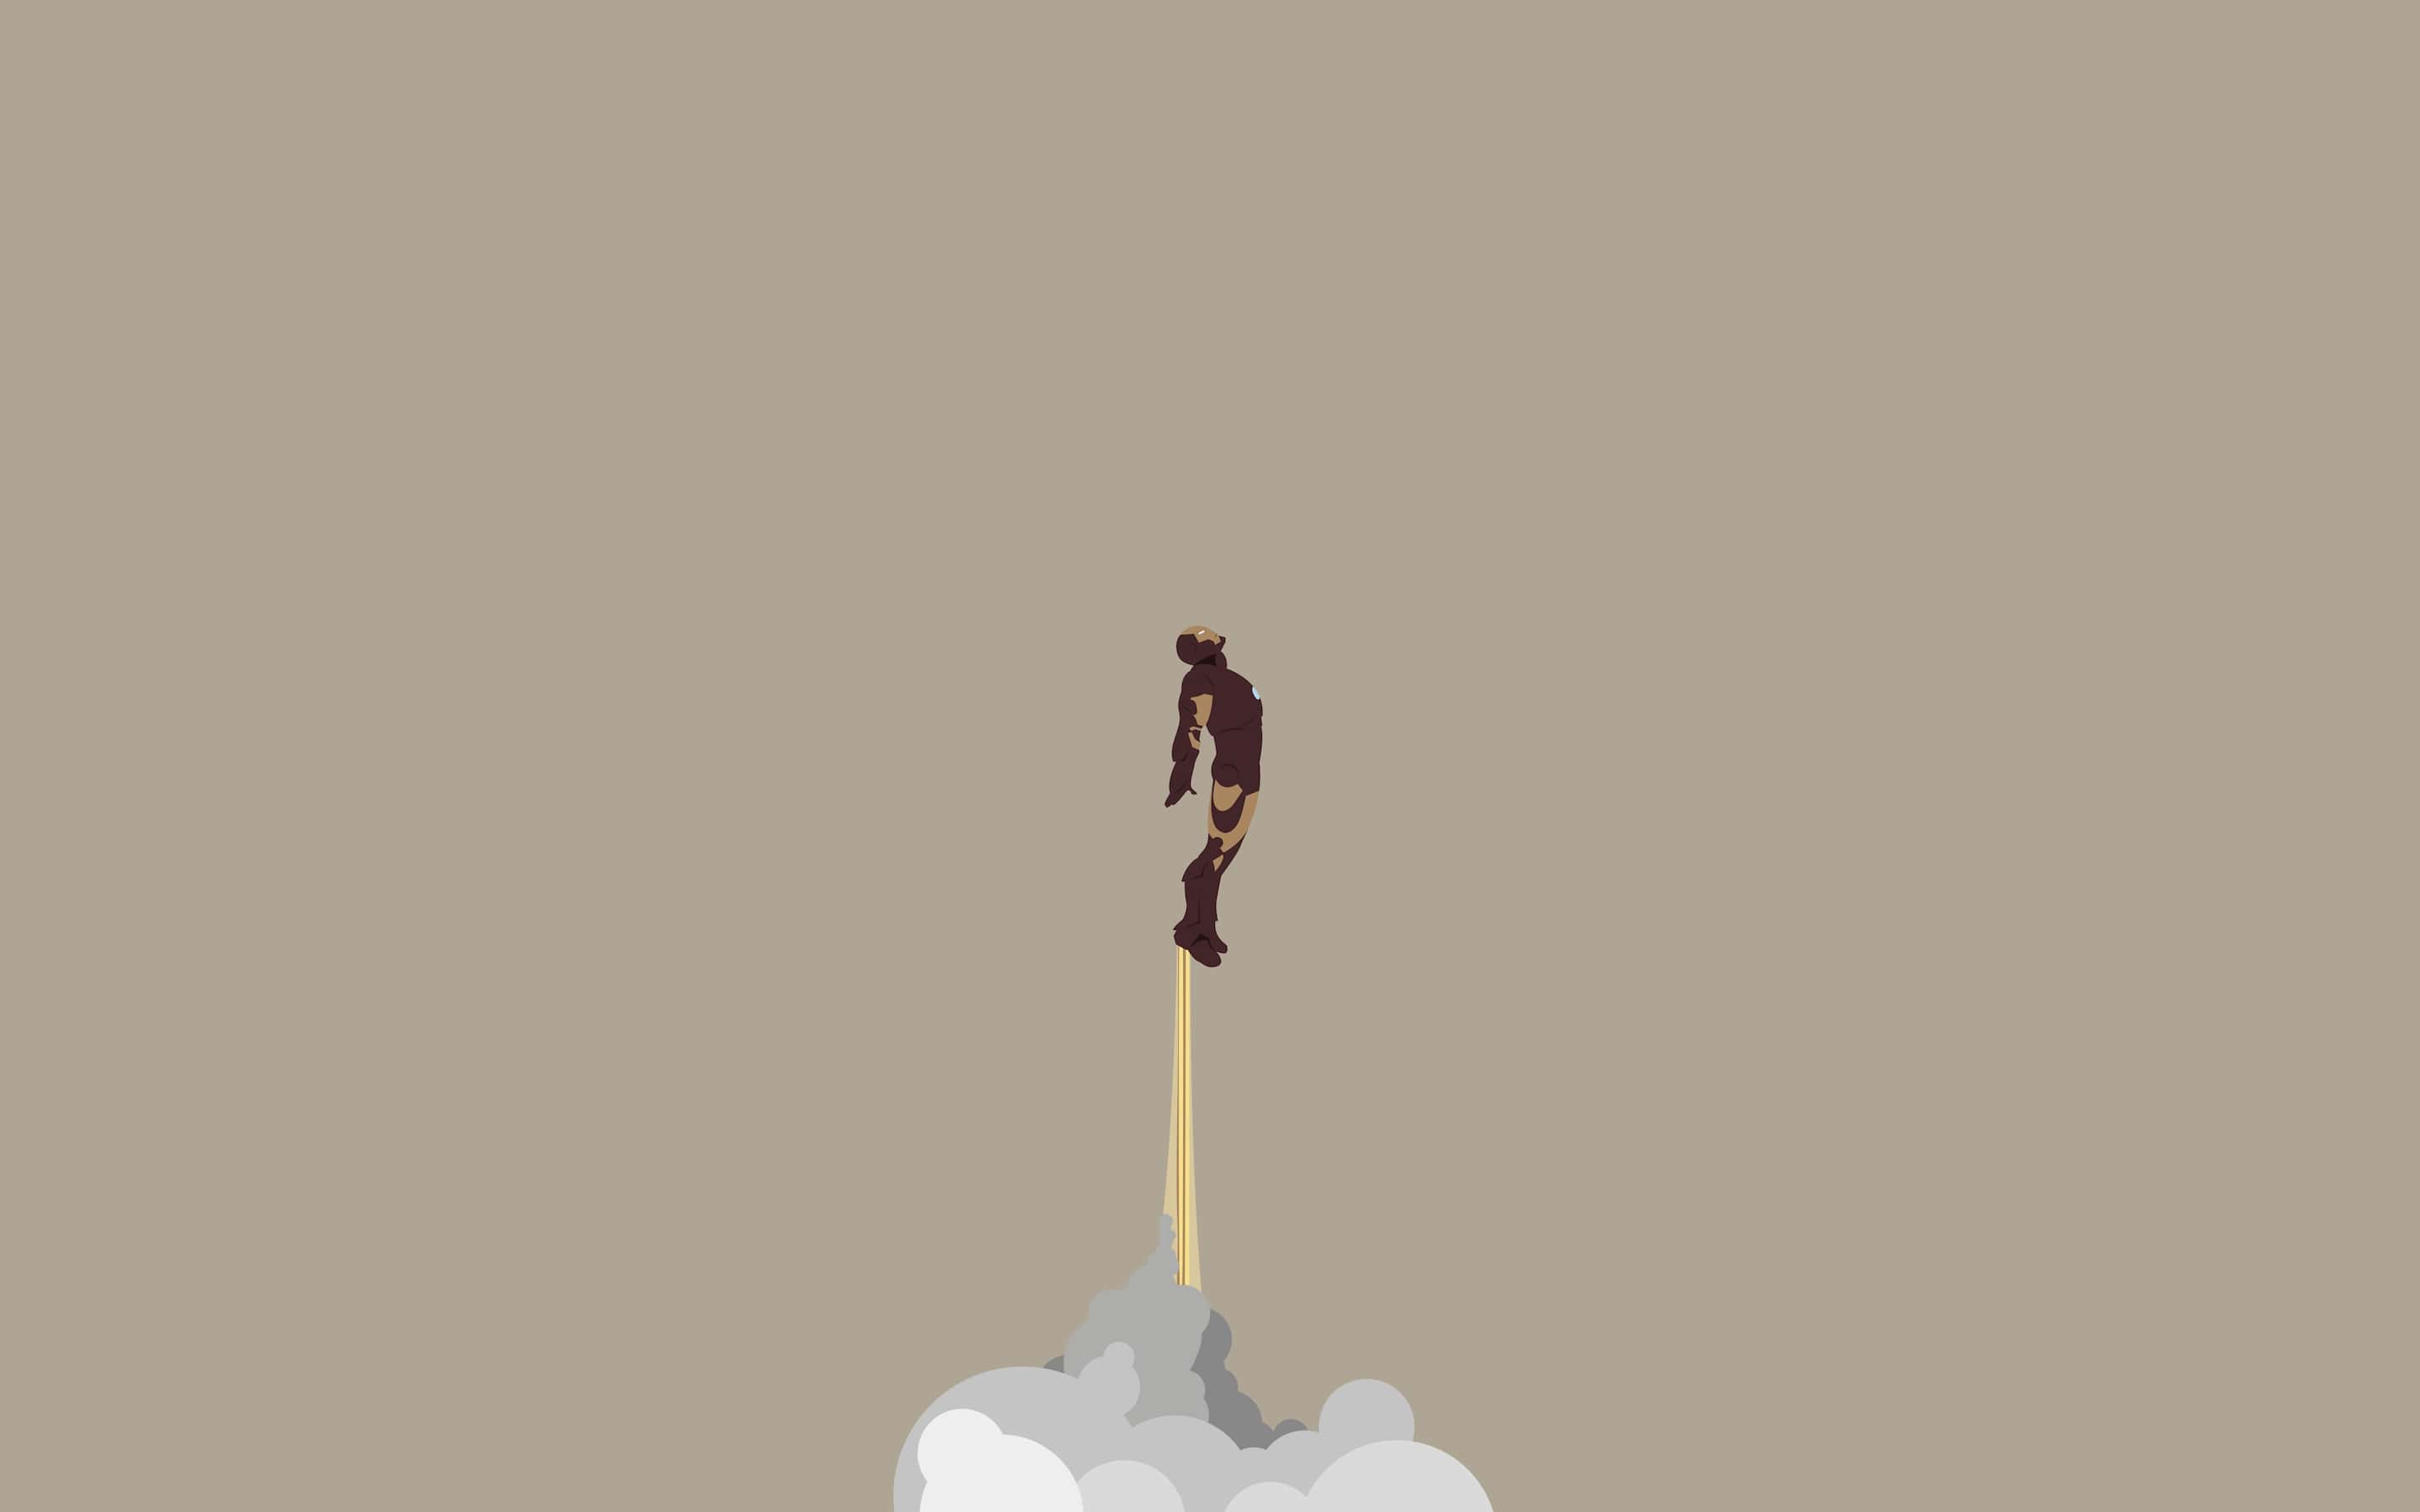 Wallpaper Iron Man Marvel Minimalism Desktop Picture Hd Photo